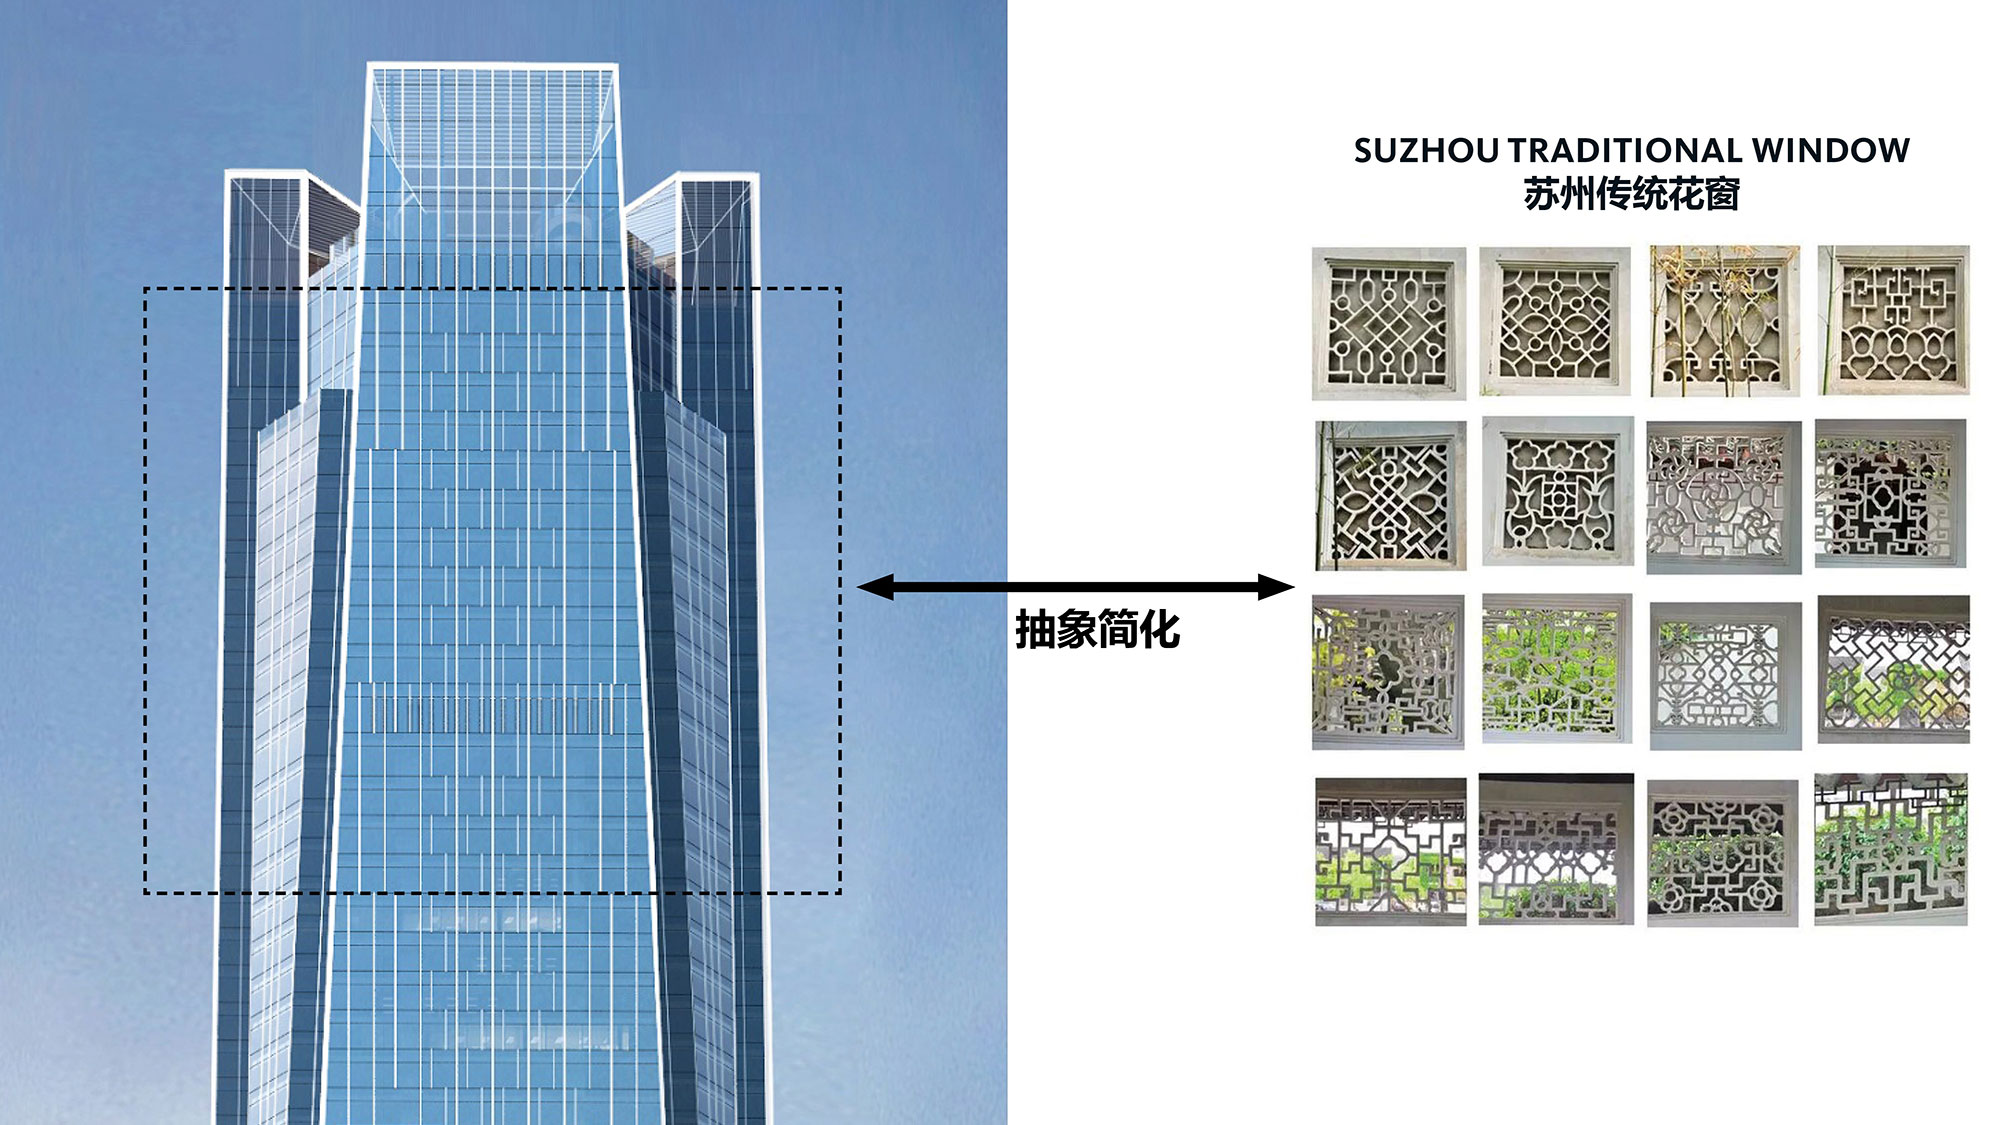 Curtain wall details show how the design team incorporated traditional Suzhou culture in a modern expression.